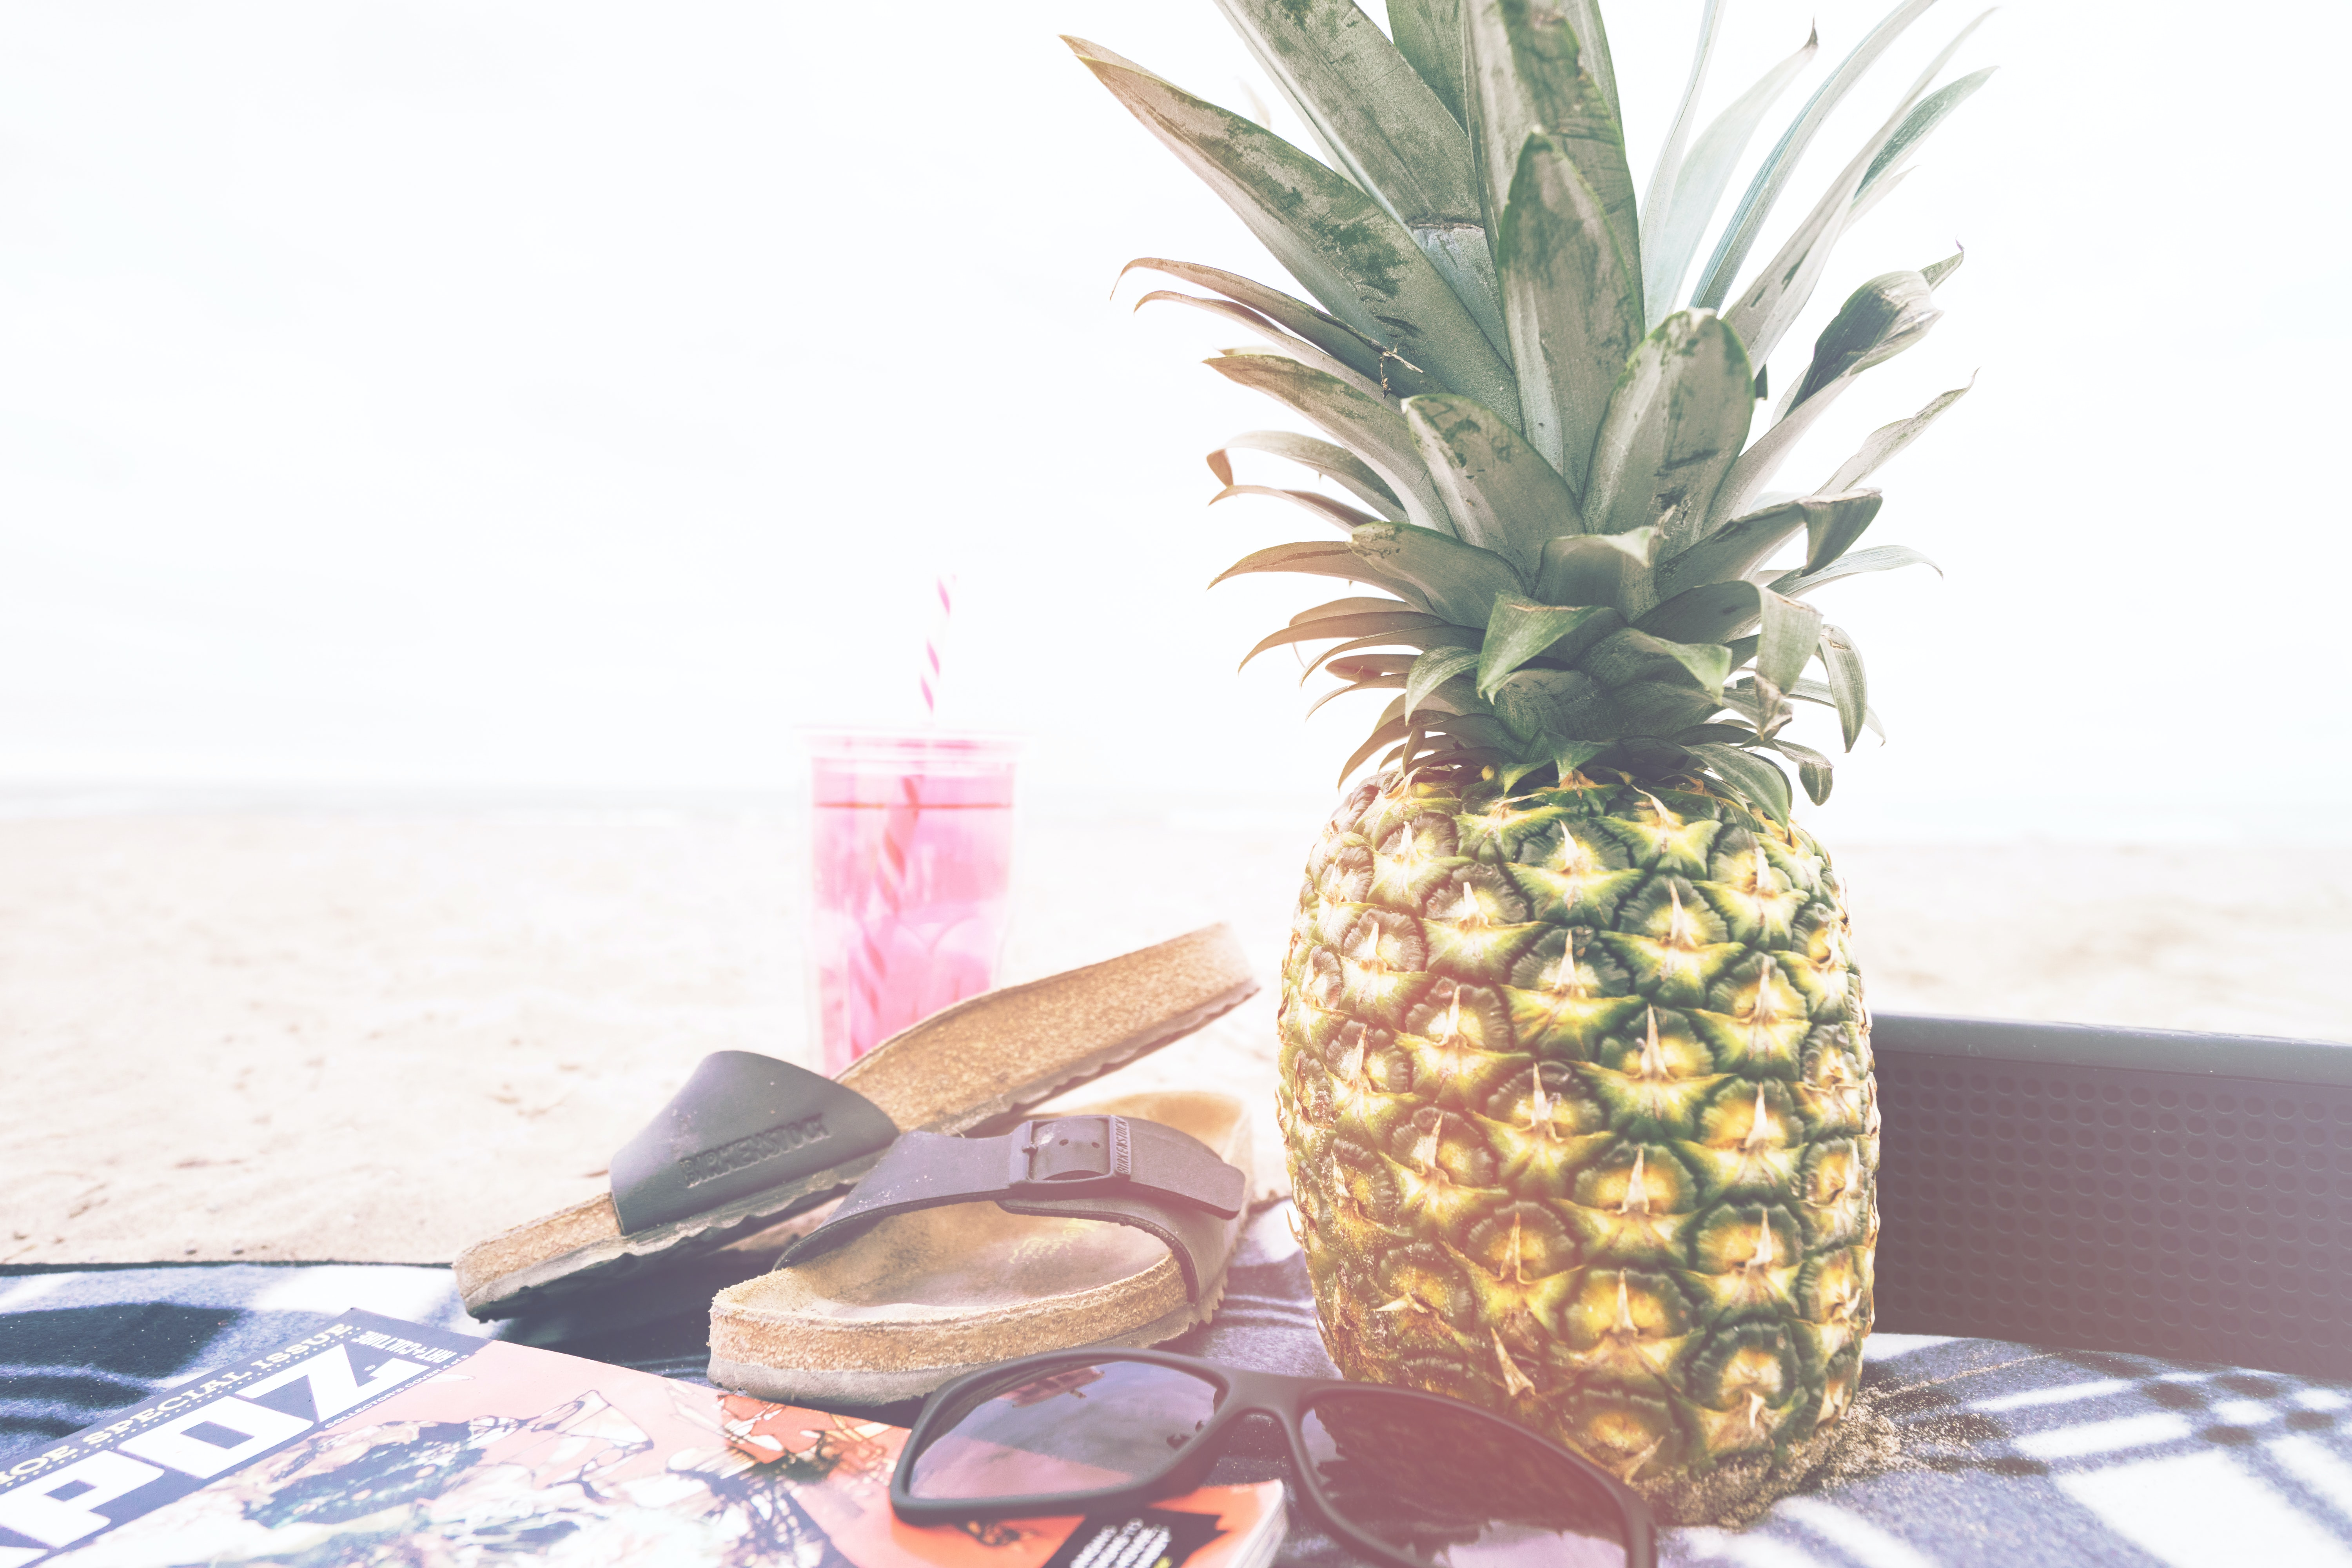 Capture of a juicy looking pineapple beside a sandal with pink sunglass and magazine Port Stanley